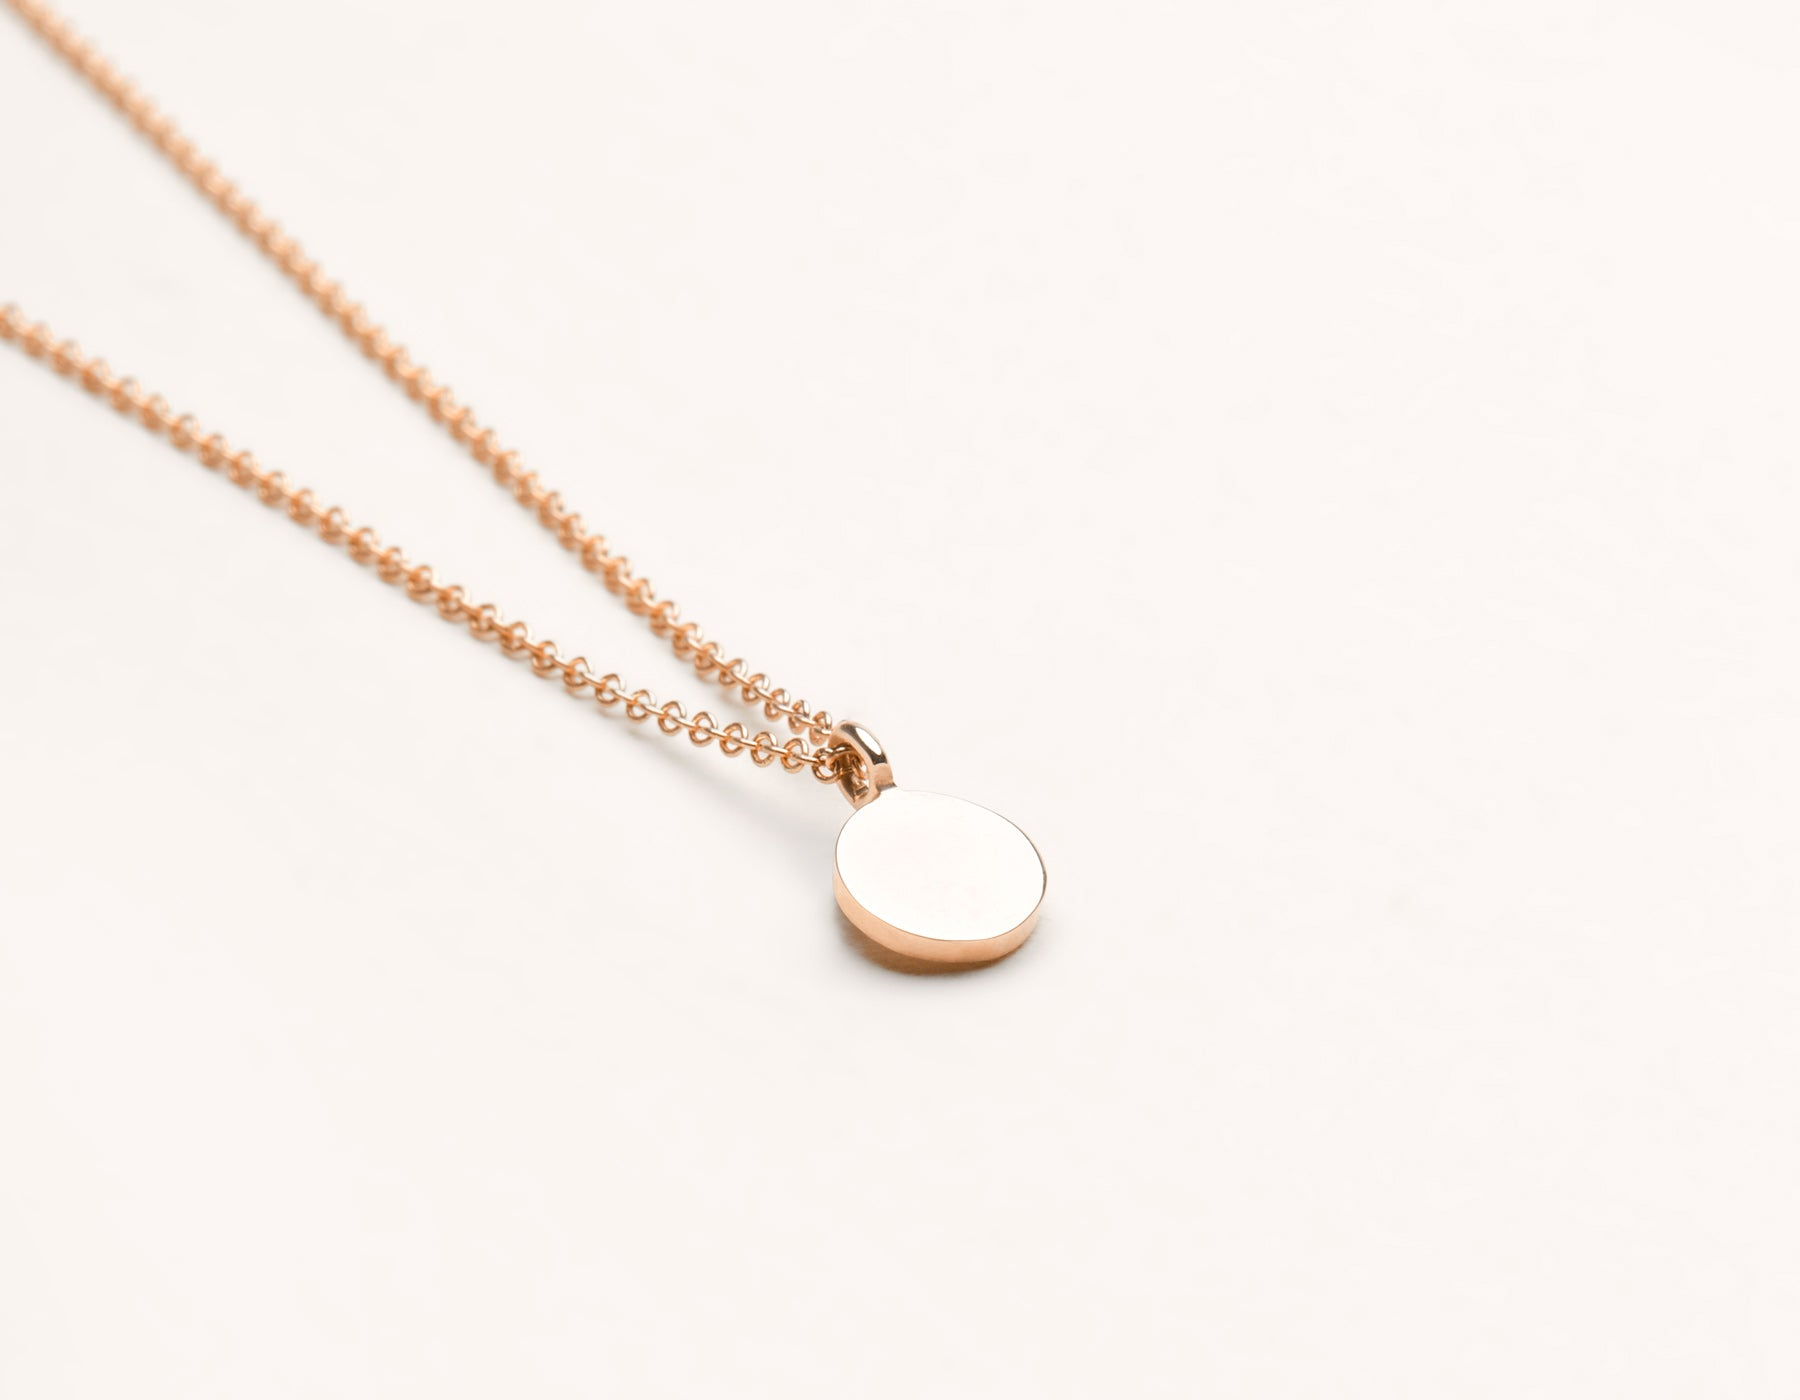 Personalized engraving Initial Necklace 14k solid gold small disk delicate chain Vrai & Oro, 14K Rose Gold